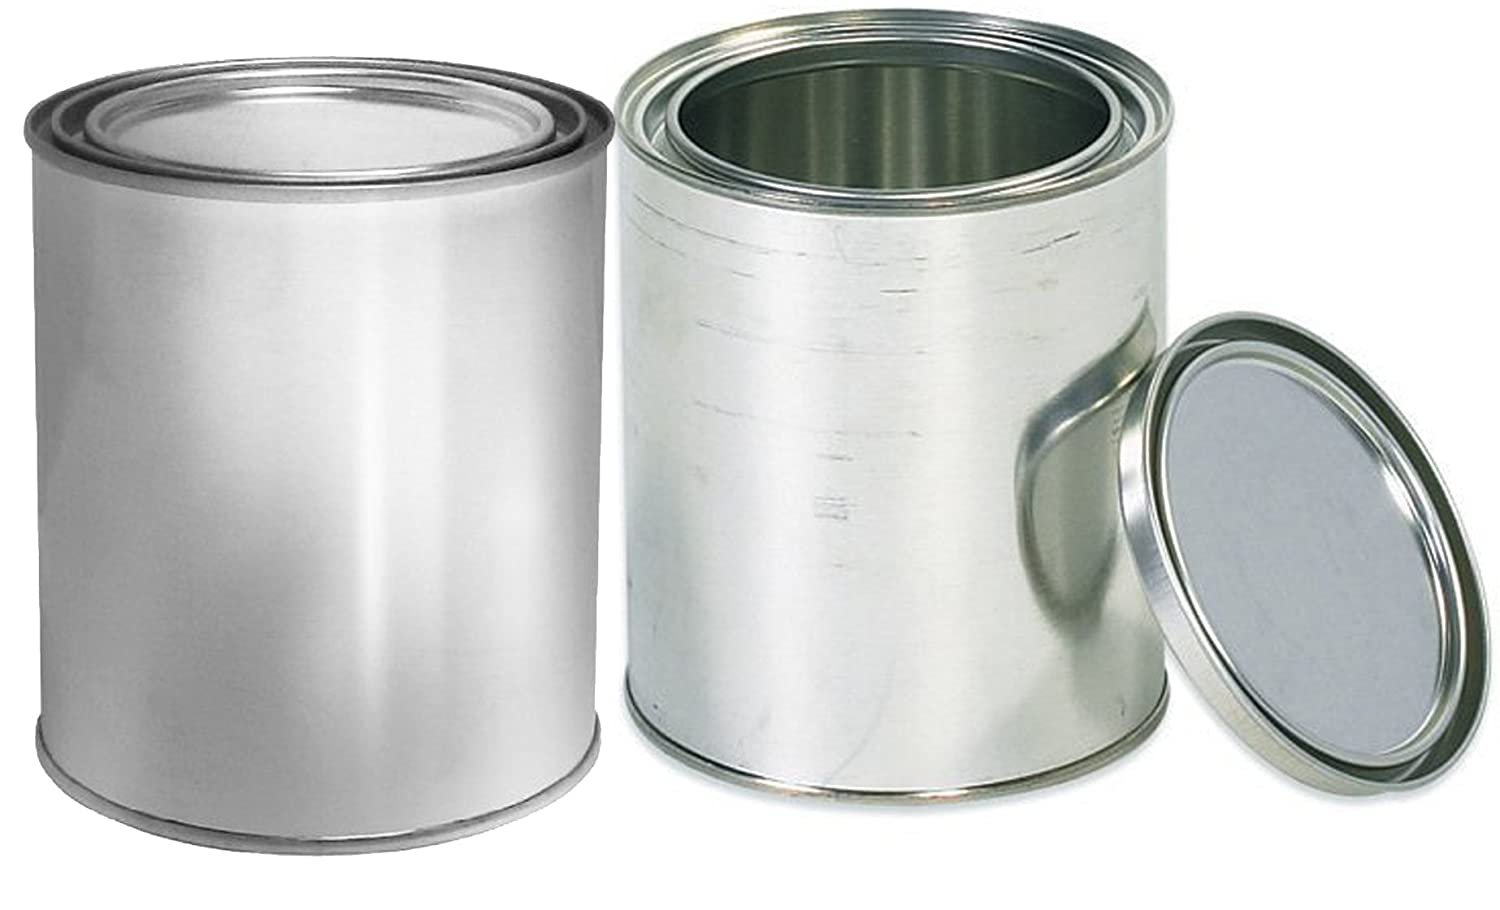 Empty Quart Paint Cans With Lids 2 Pack Empty Metal